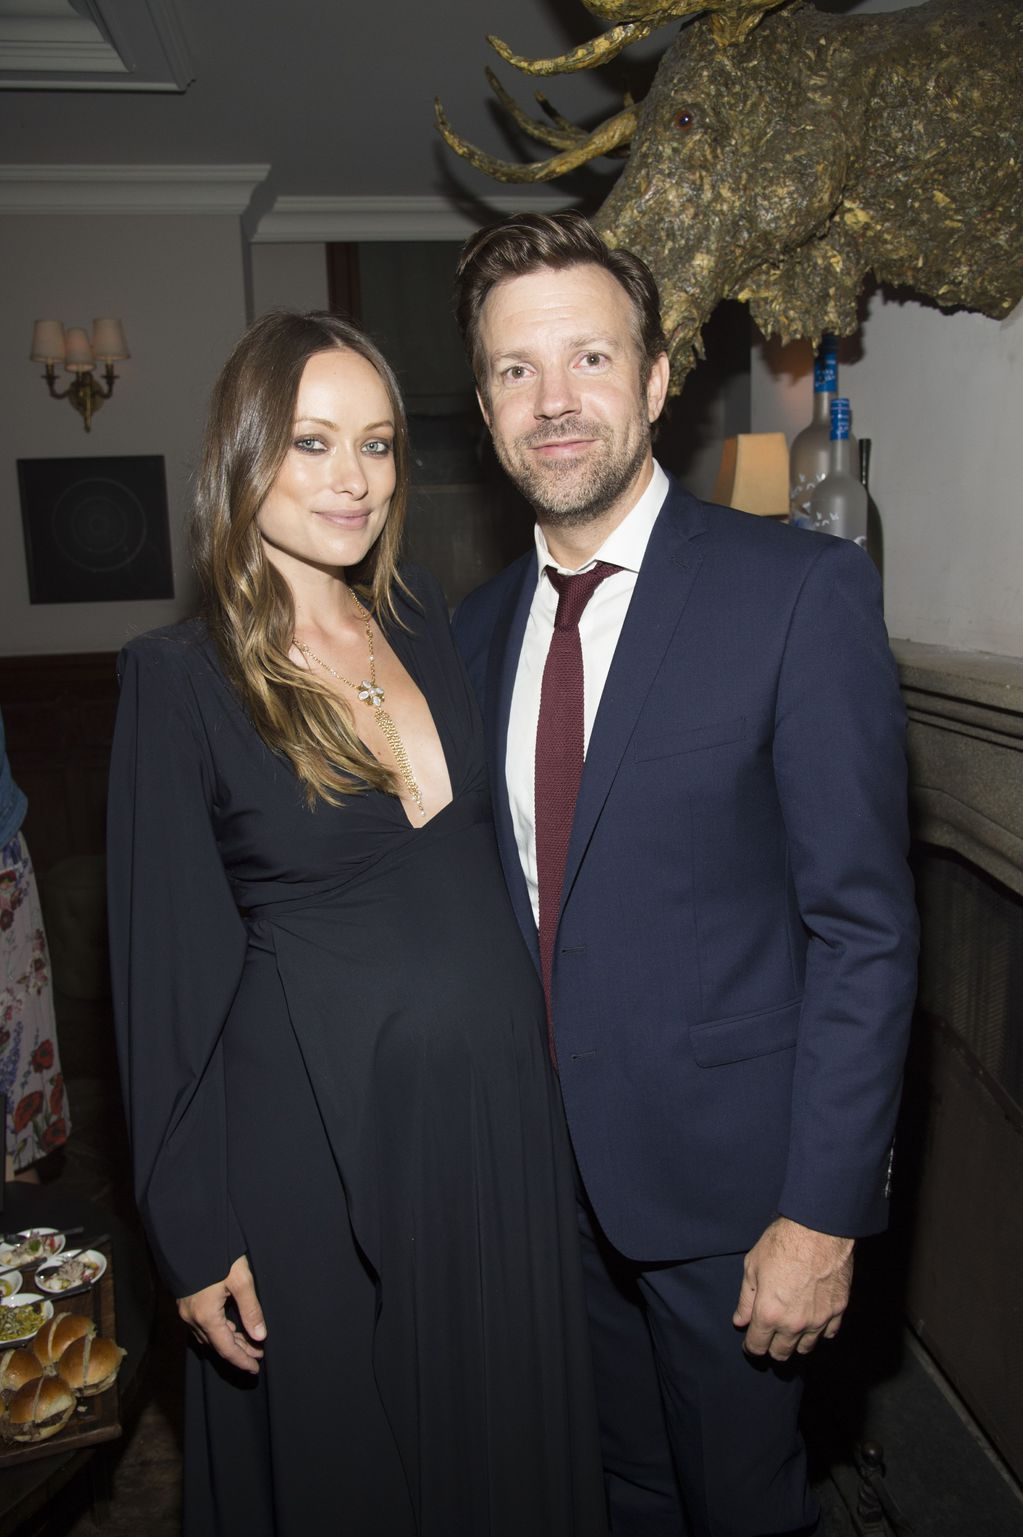 Olivia Wilde és Jason Sudeikis. Fotó: Rex Features